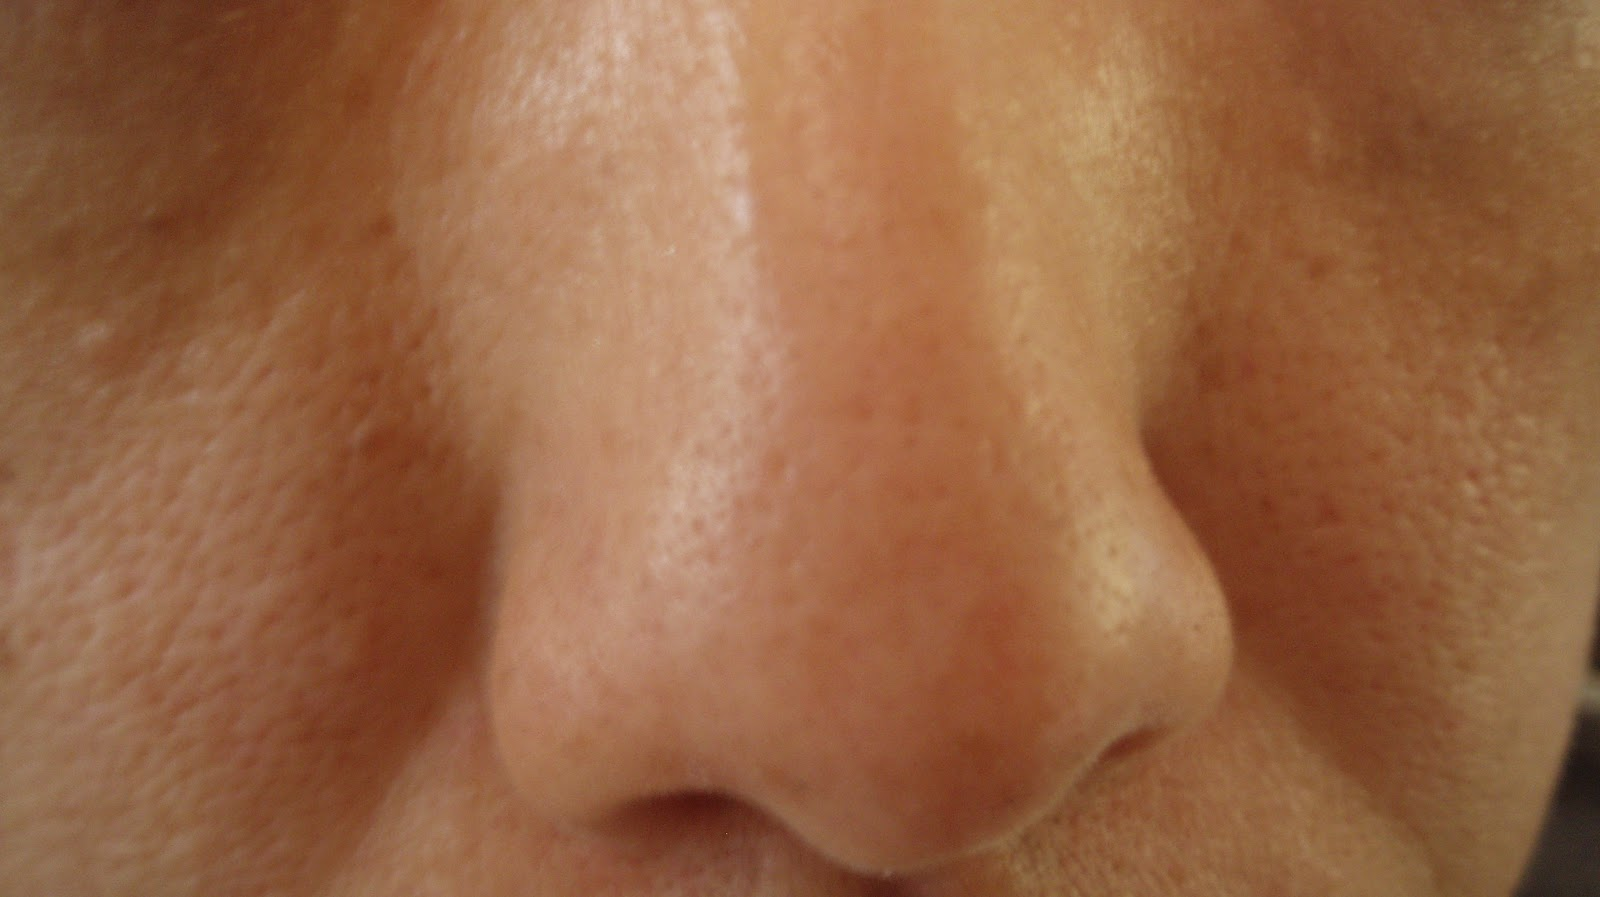 How to unclog nose pores foto